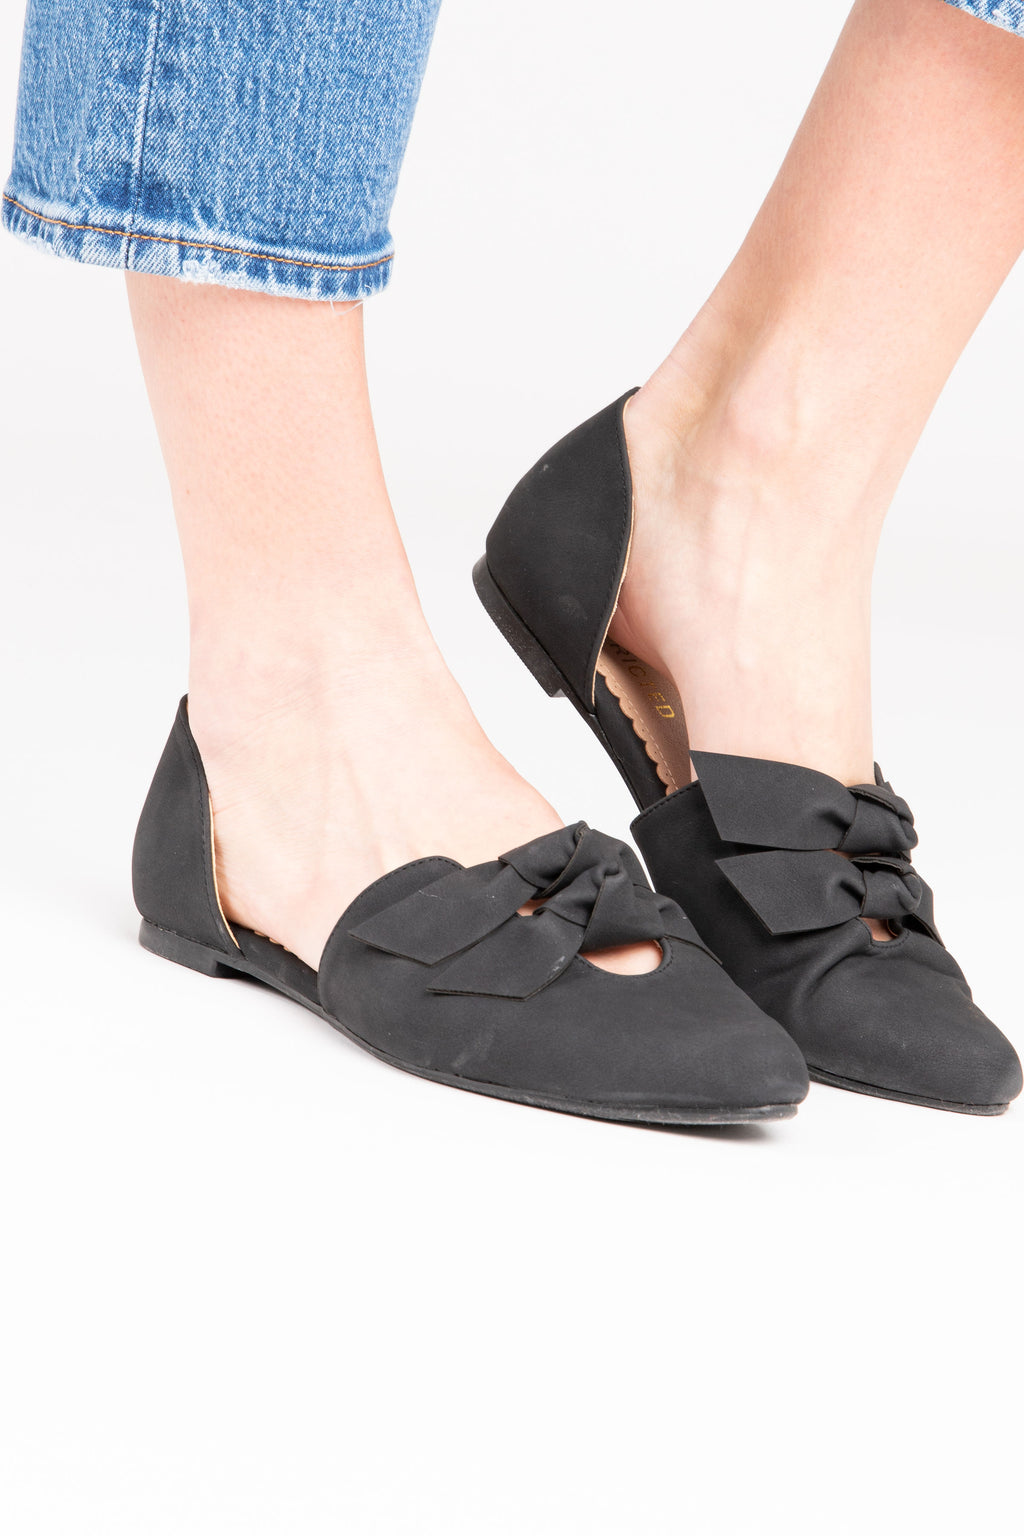 The GABIA Knotted d'Orsay Flat in Black, studio shoot; side view